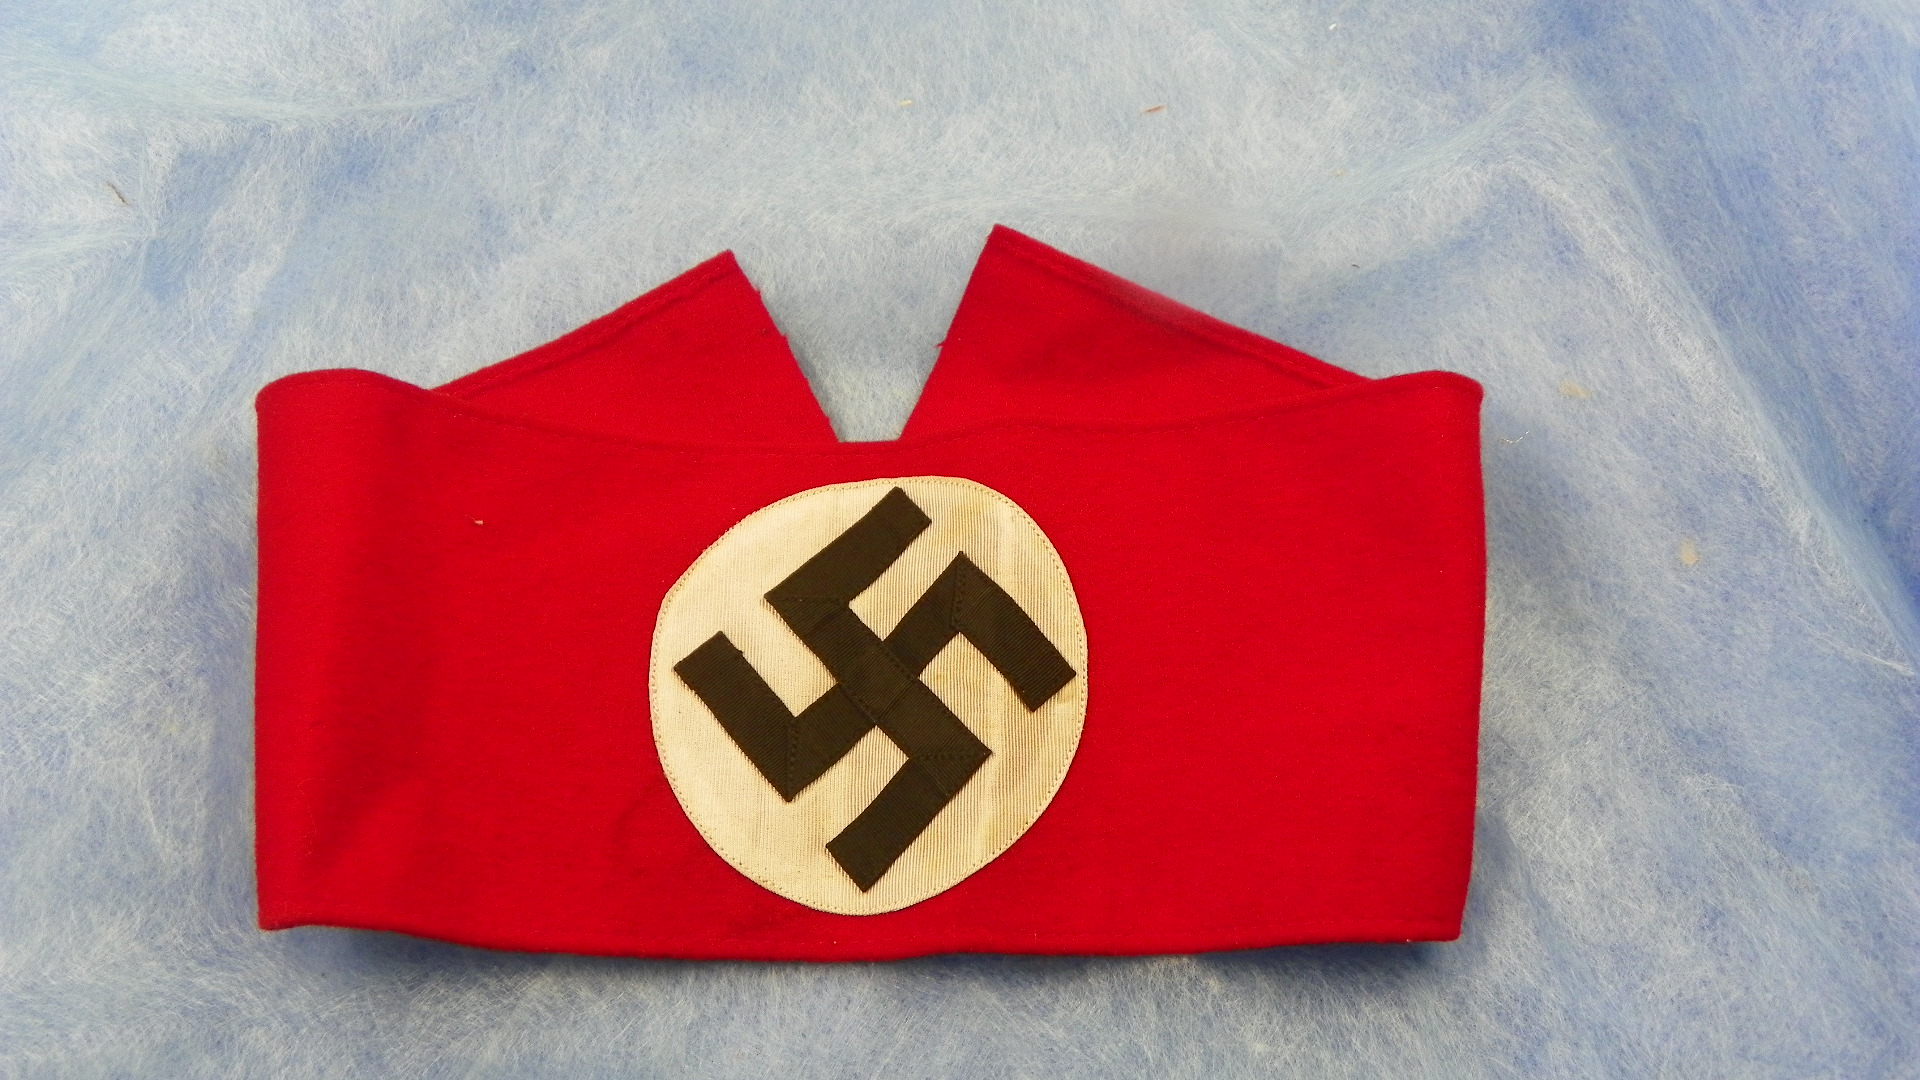 Weinand militaria nazi party armband 21 inches long with multi piece construction as nice as you will find and has blue ink sa rzm tag inside and no mothing biocorpaavc Image collections